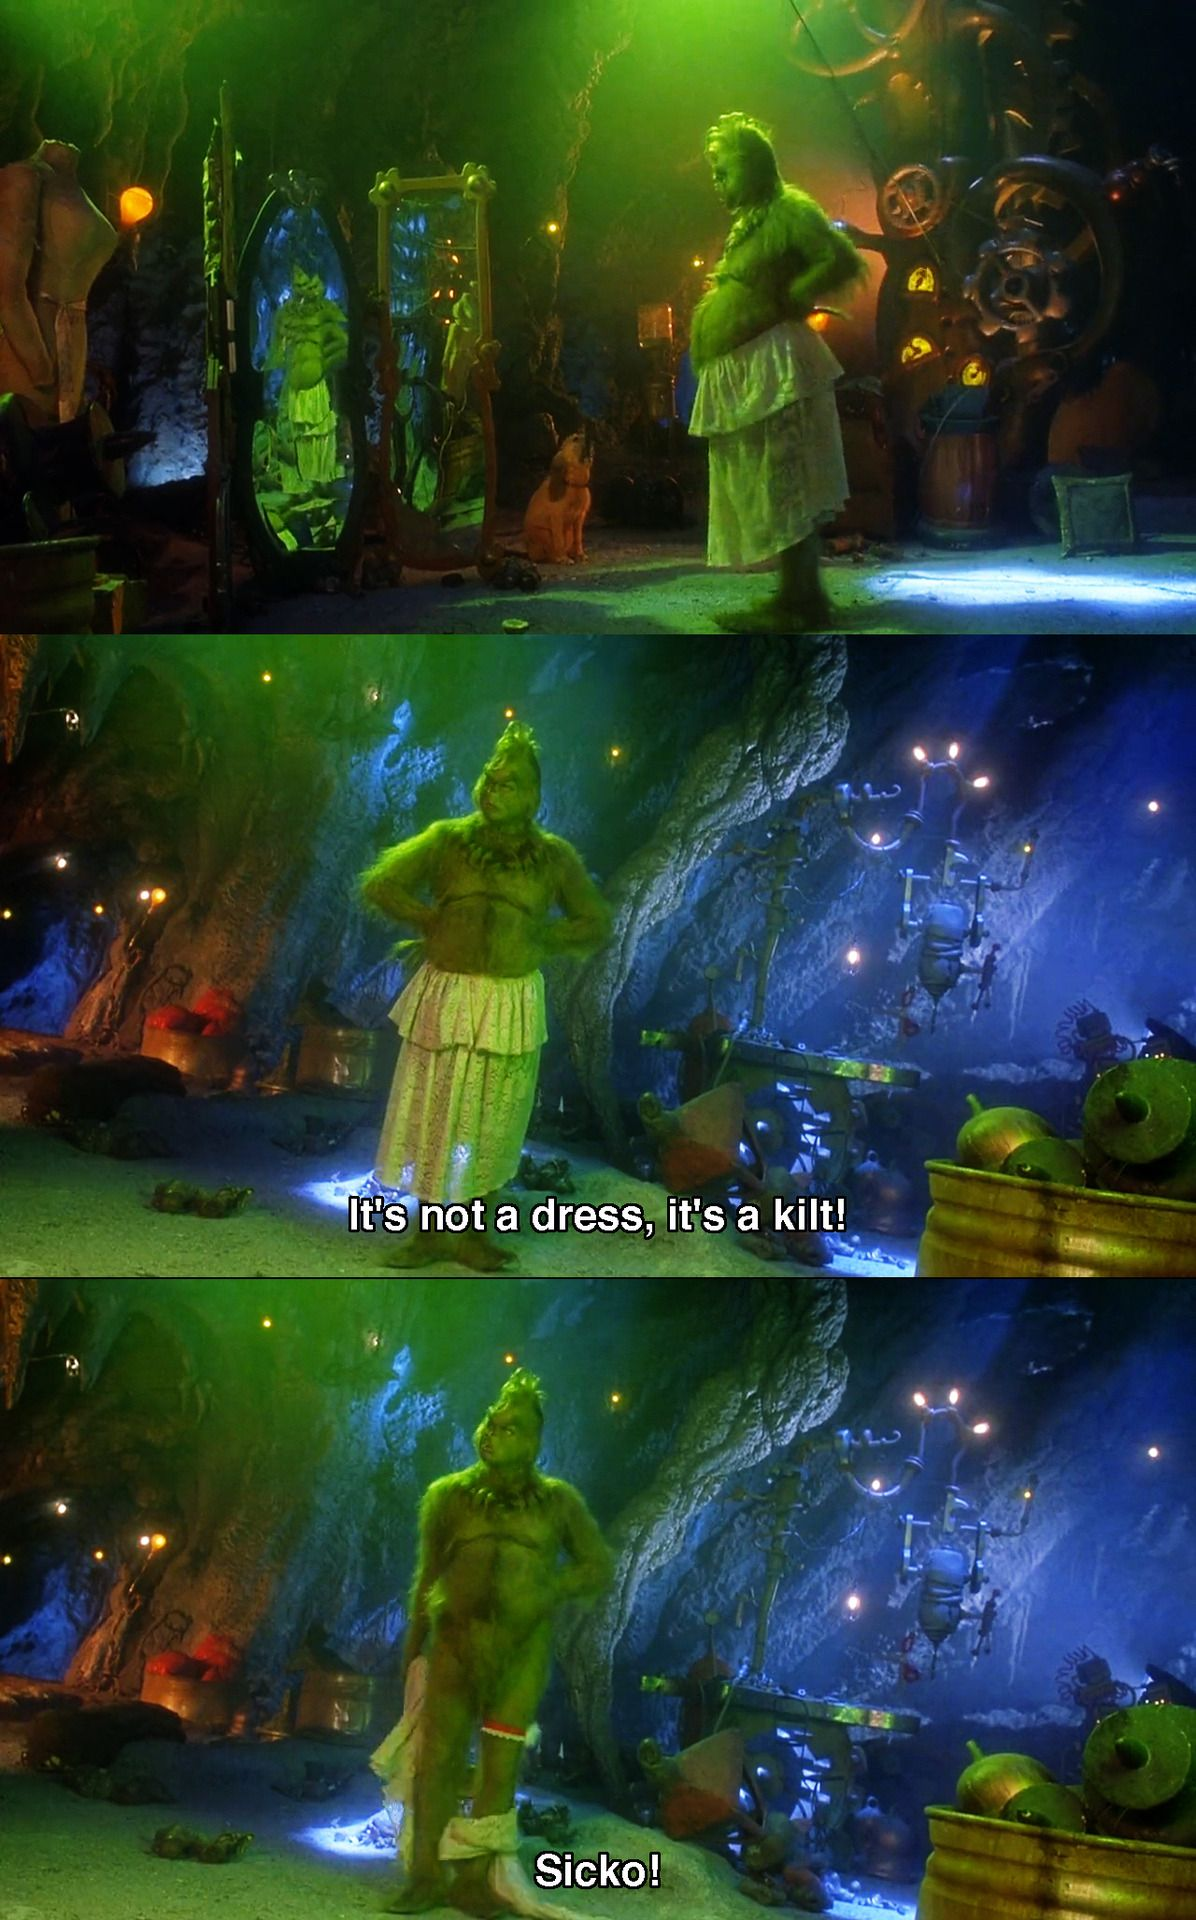 Let's Go To The Movies (With images) | The grinch movie ...